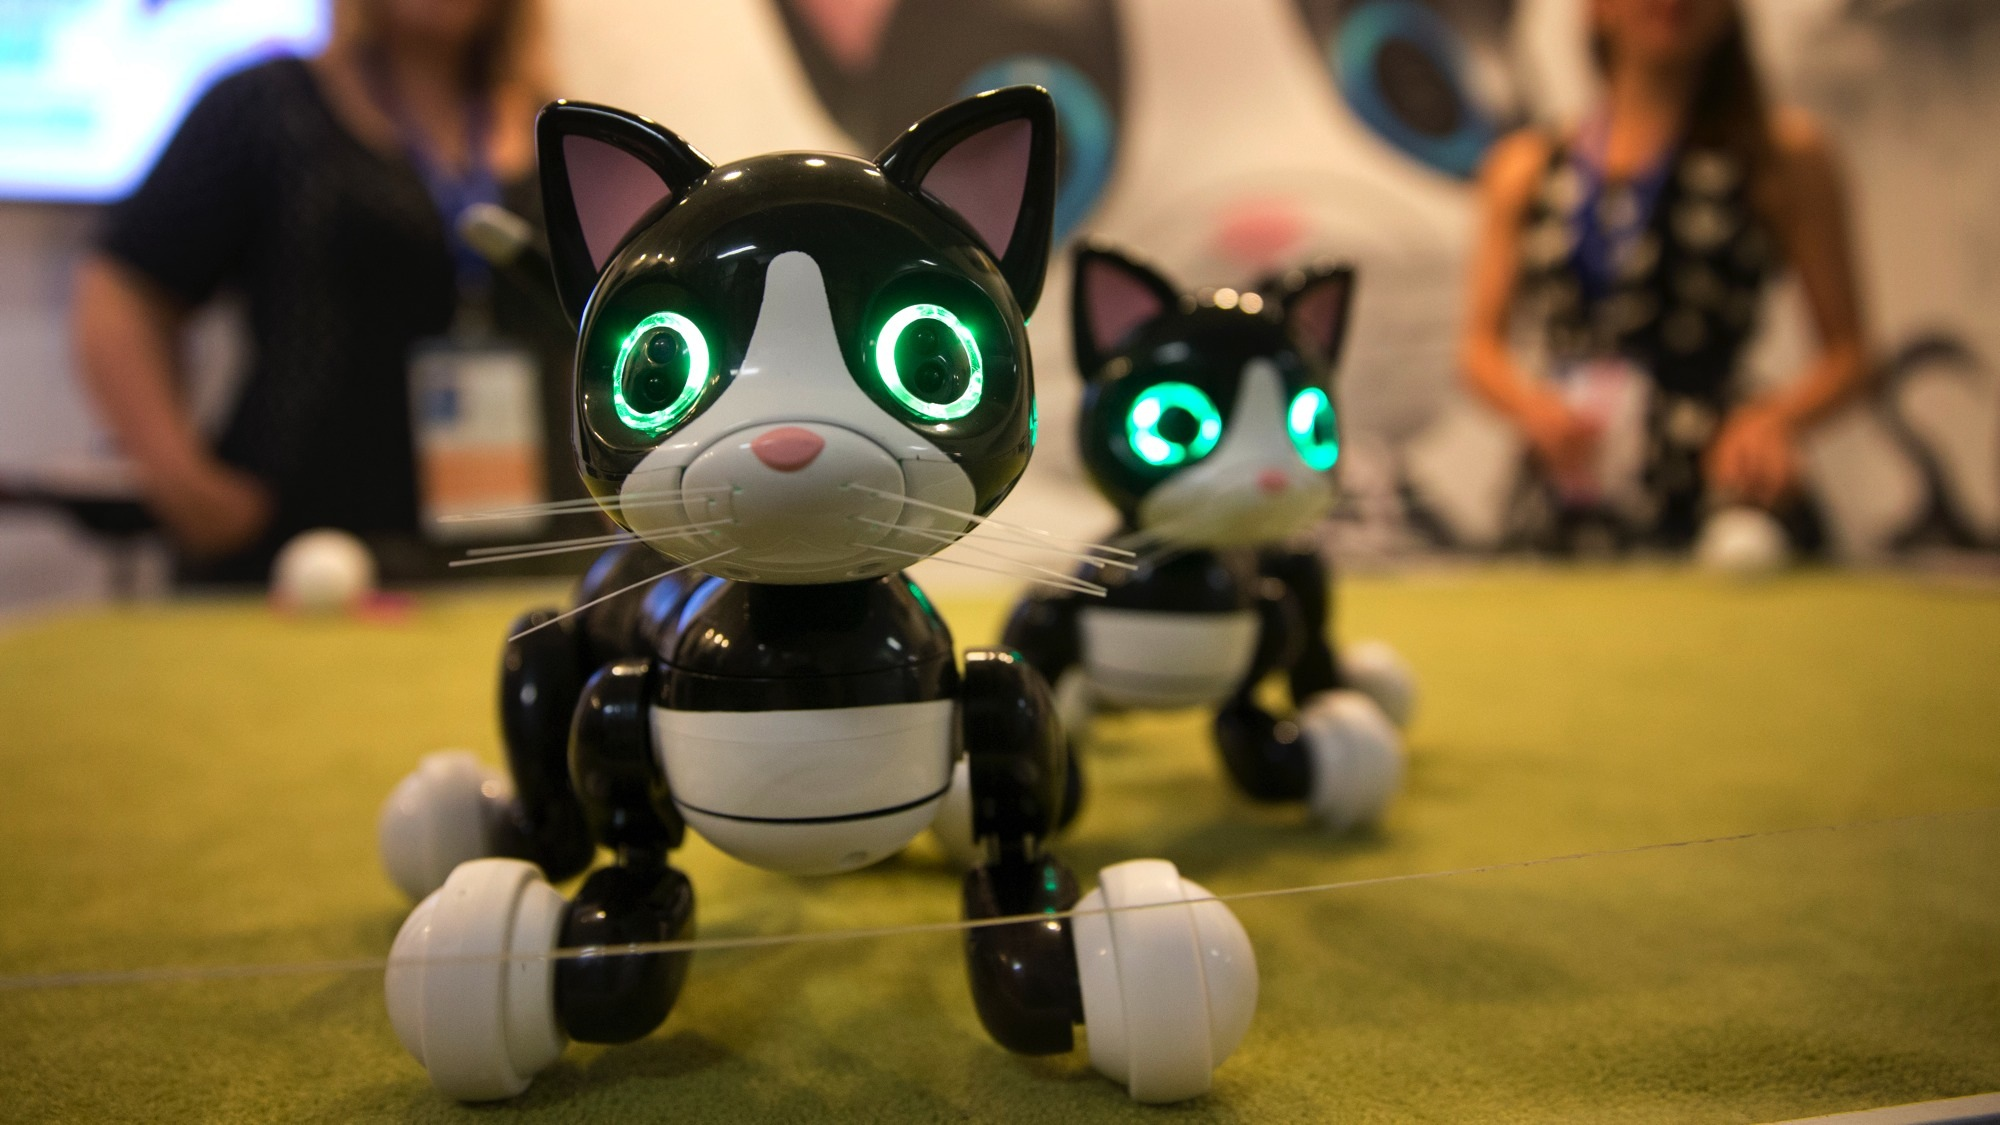 In this Saturday, June 6, 2015 photo, robot pets Zoomer Kitties are demonstrated at CatConLA in Los Angeles. The first-ever CatConLA brought the cat craze popularized online to life. (AP Photo/Jae C. Hong)